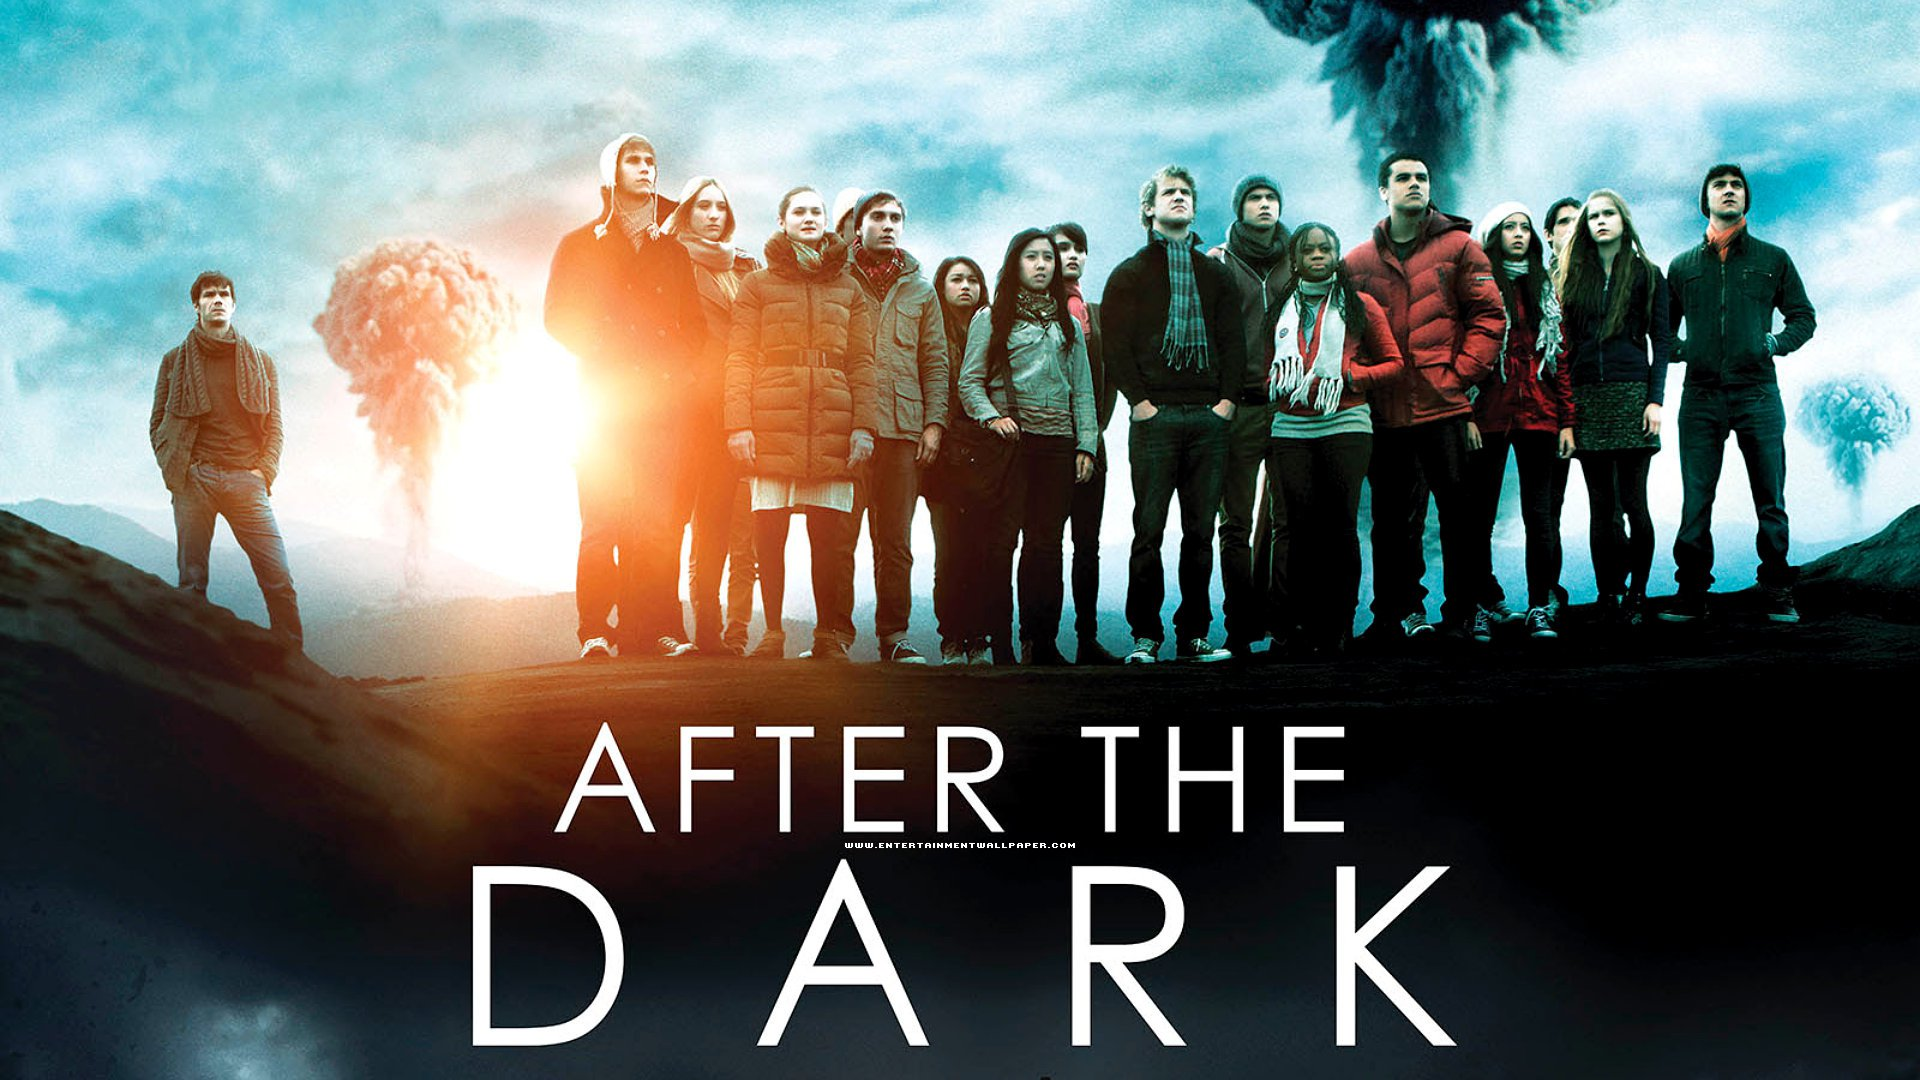 After Dark  Movie Wiki